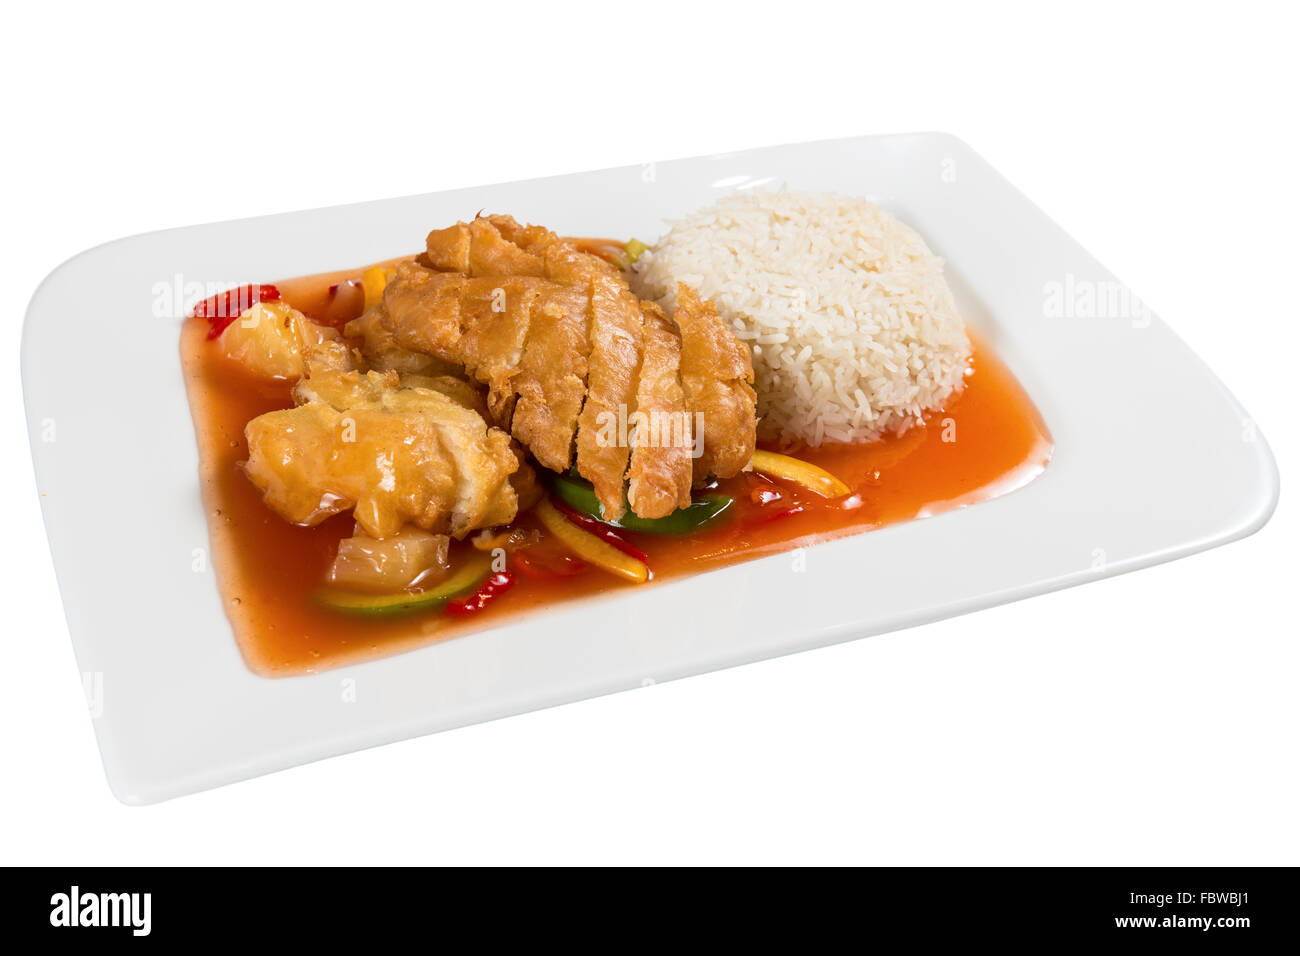 Chinese Food On A White Plate Roast Chicken With Vegetables